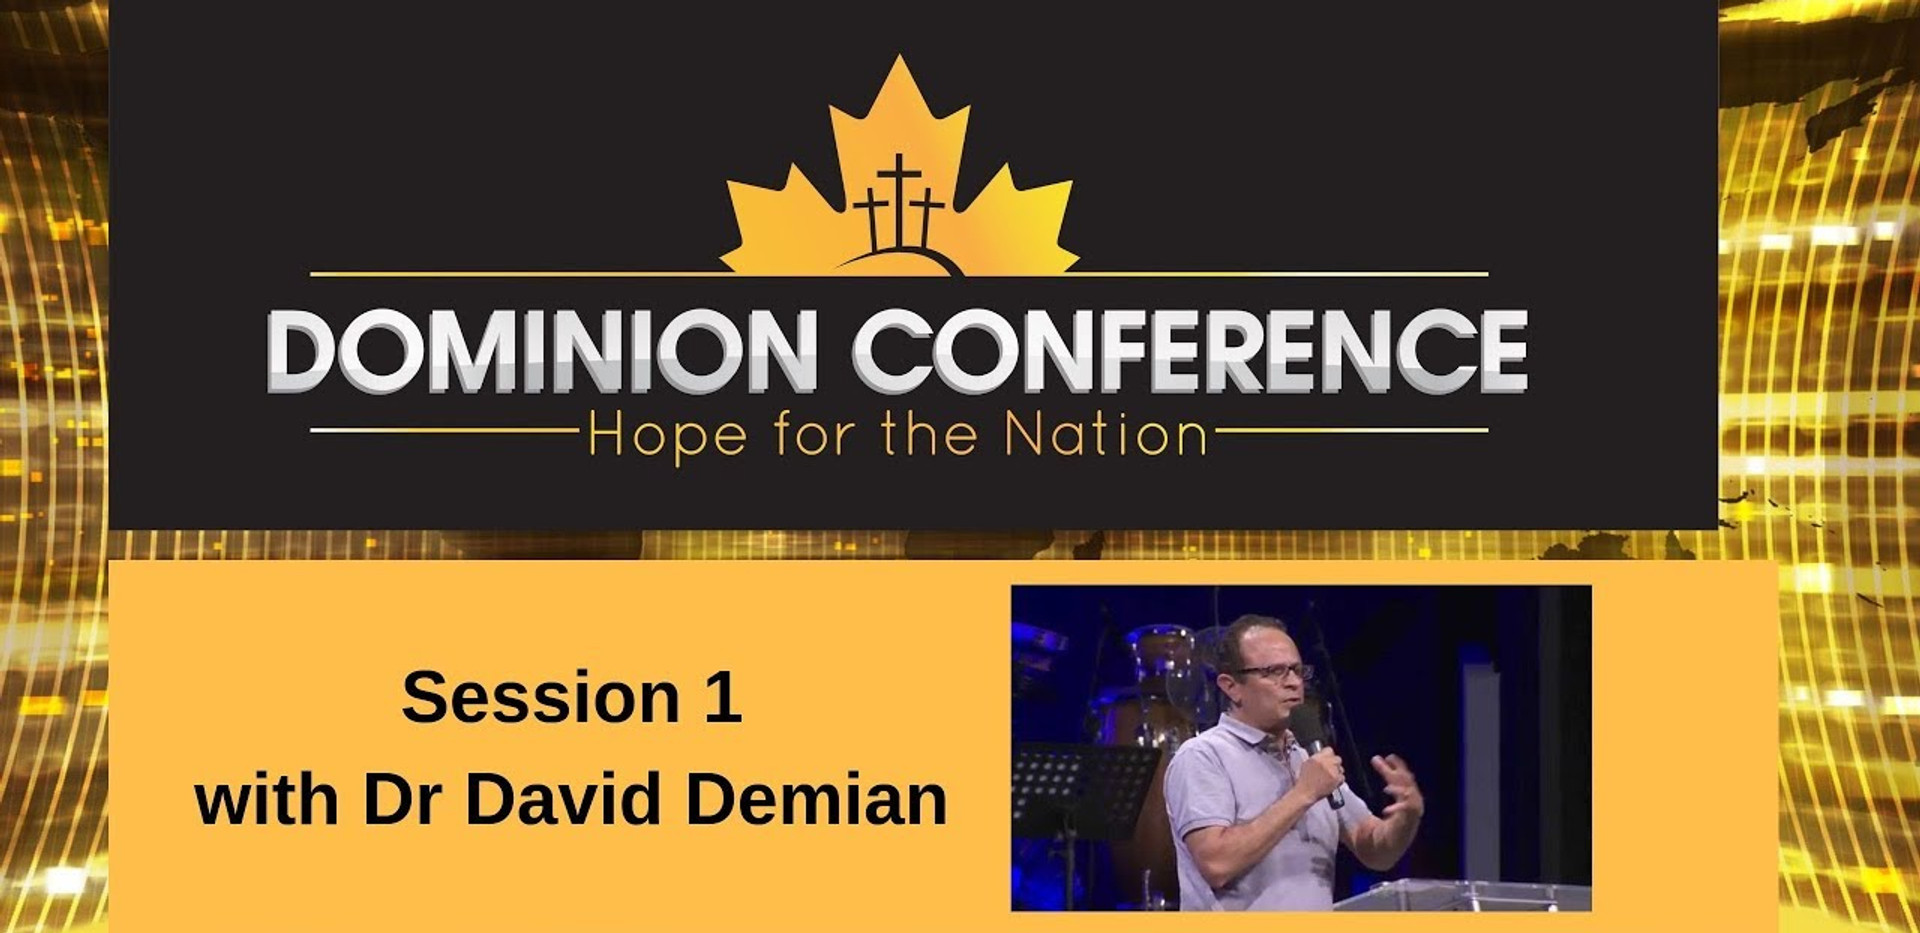 Dominion Conference Lethbridge 2019 | Session One - Friday, June 28th 2019 | David Demian